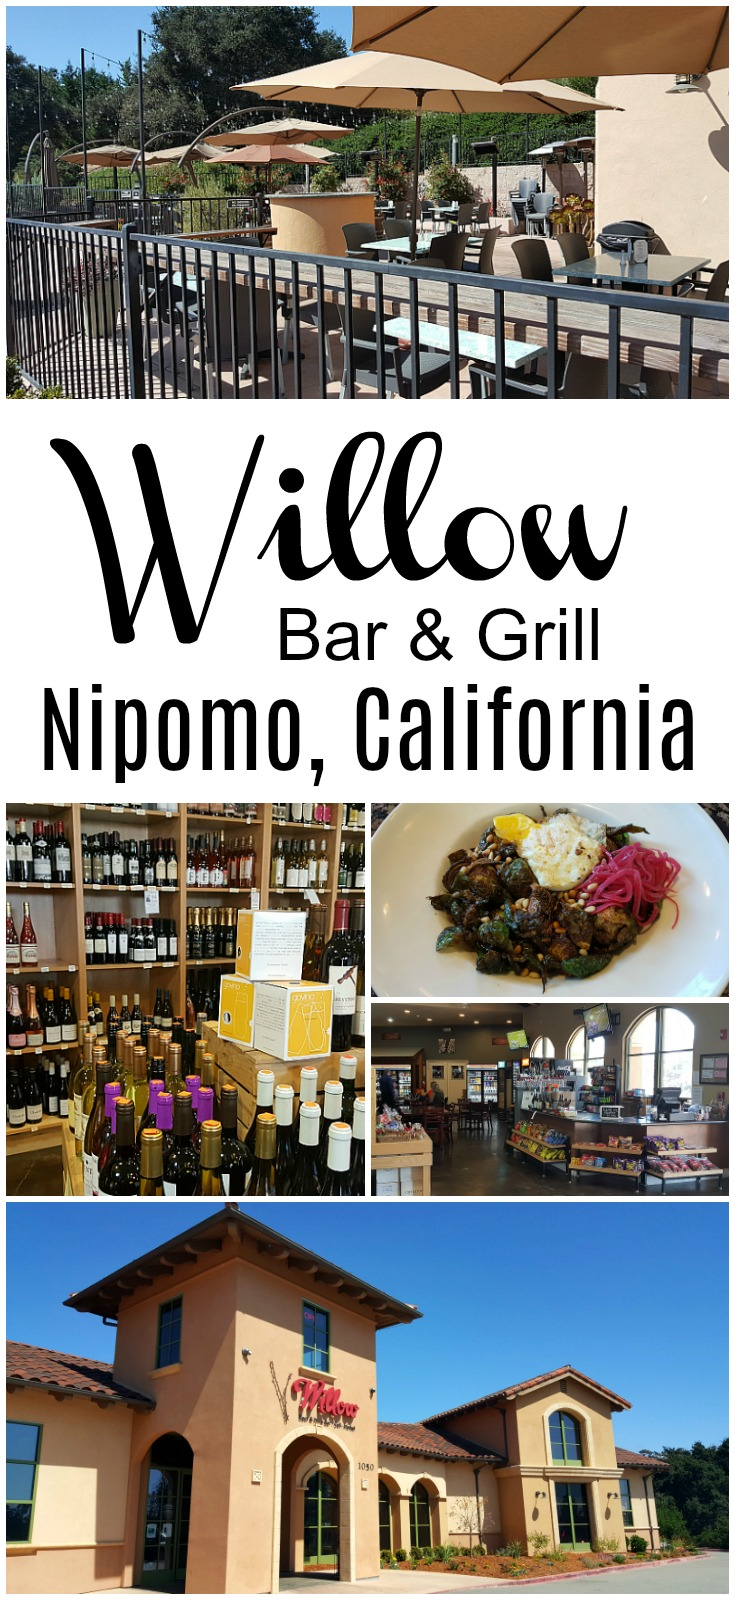 Willow Bar & Grill in Nipomo - Santa Maria Valley Restaurant for lunch, dinner and happy hour